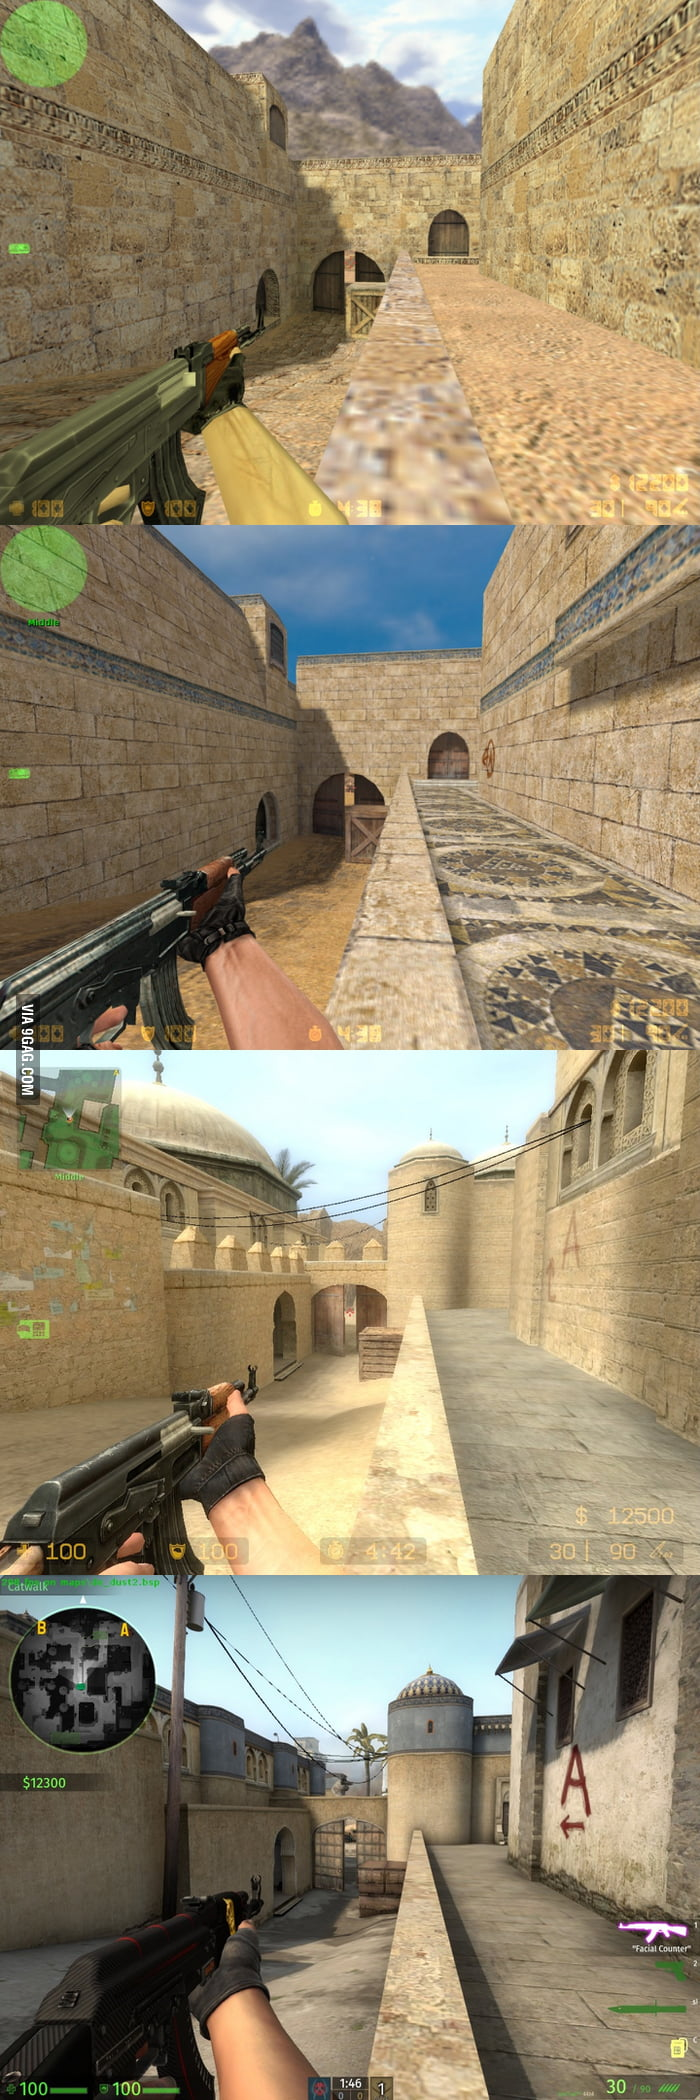 Counter strike yuriгЂЂnaked porncraft pictures